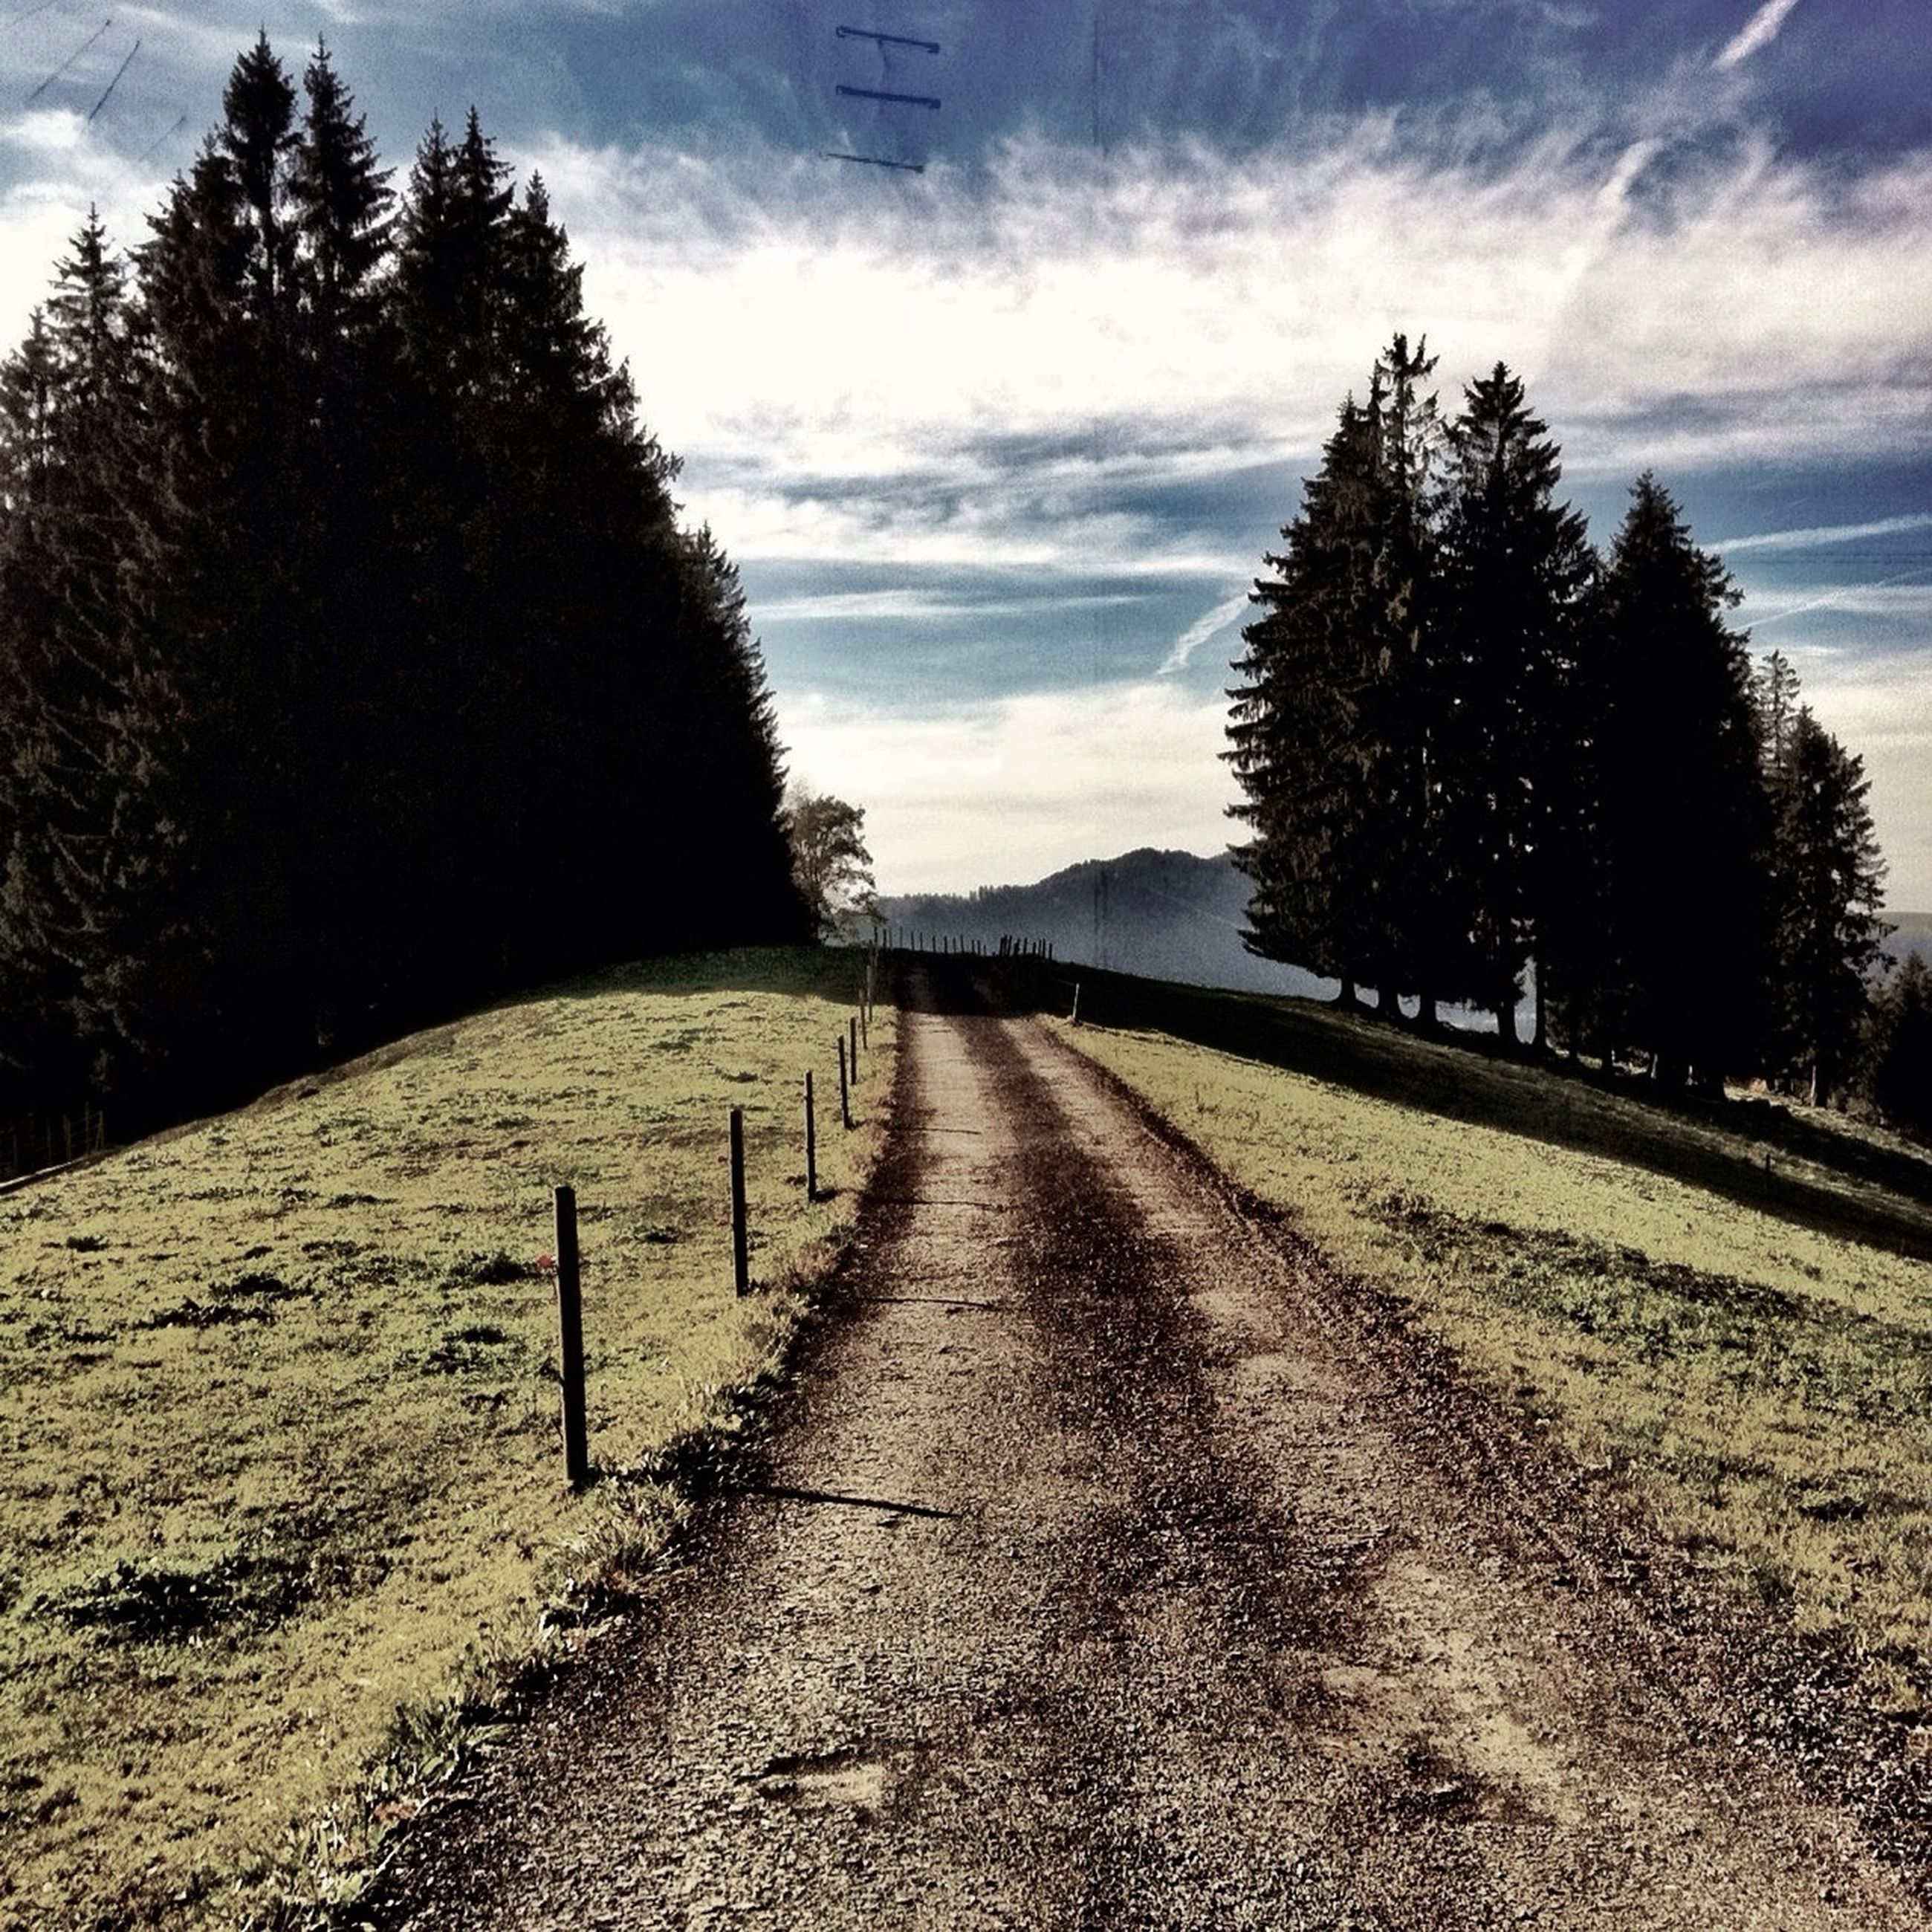 the way forward, tree, sky, diminishing perspective, vanishing point, transportation, road, cloud - sky, tranquility, tranquil scene, empty road, long, empty, bare tree, nature, cloud, no people, outdoors, day, landscape